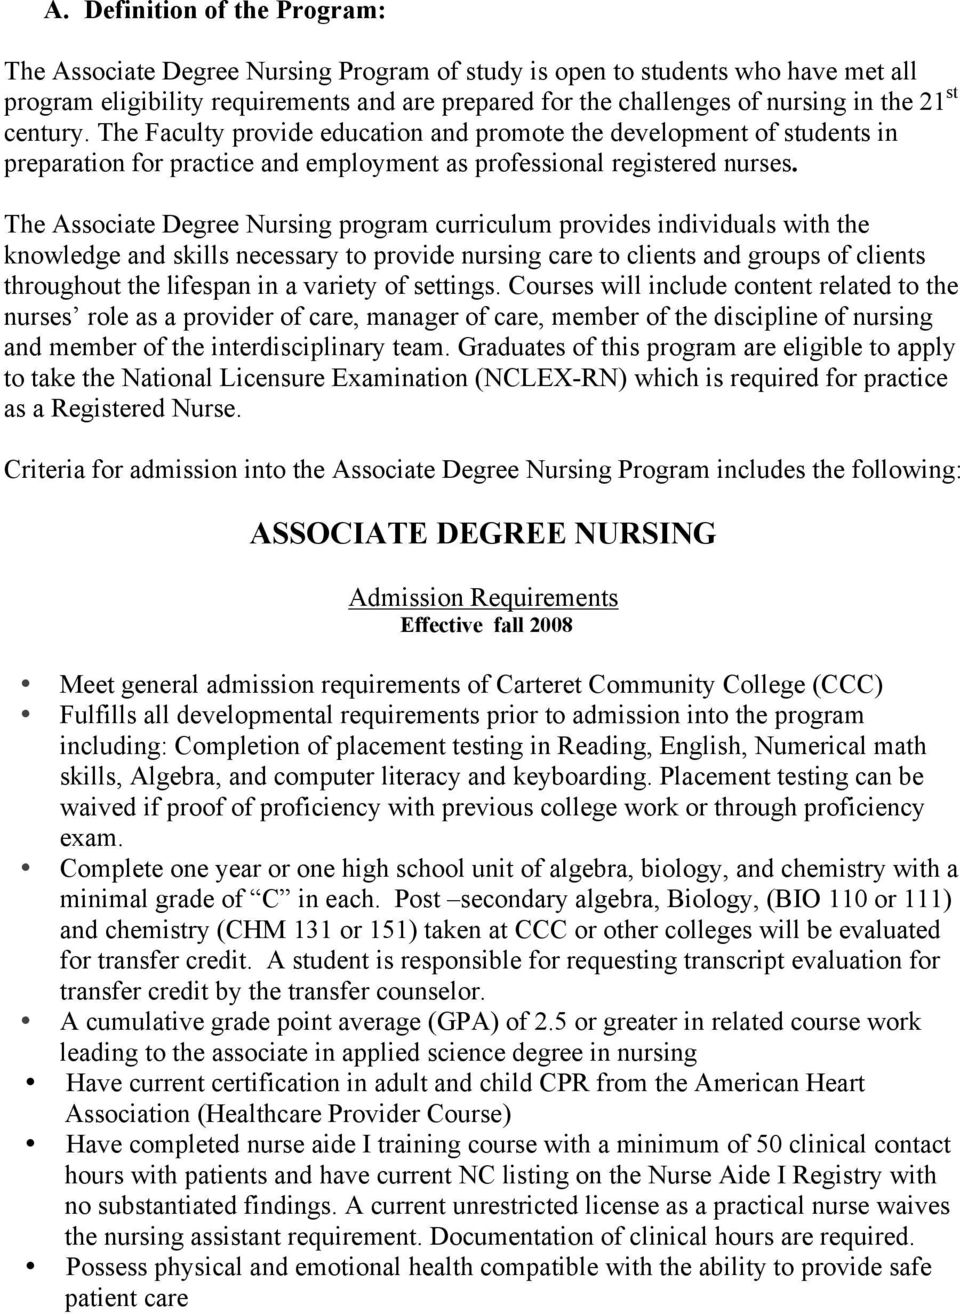 The Associate Degree Nursing program curriculum provides individuals with the knowledge and skills necessary to provide nursing care to clients and groups of clients throughout the lifespan in a